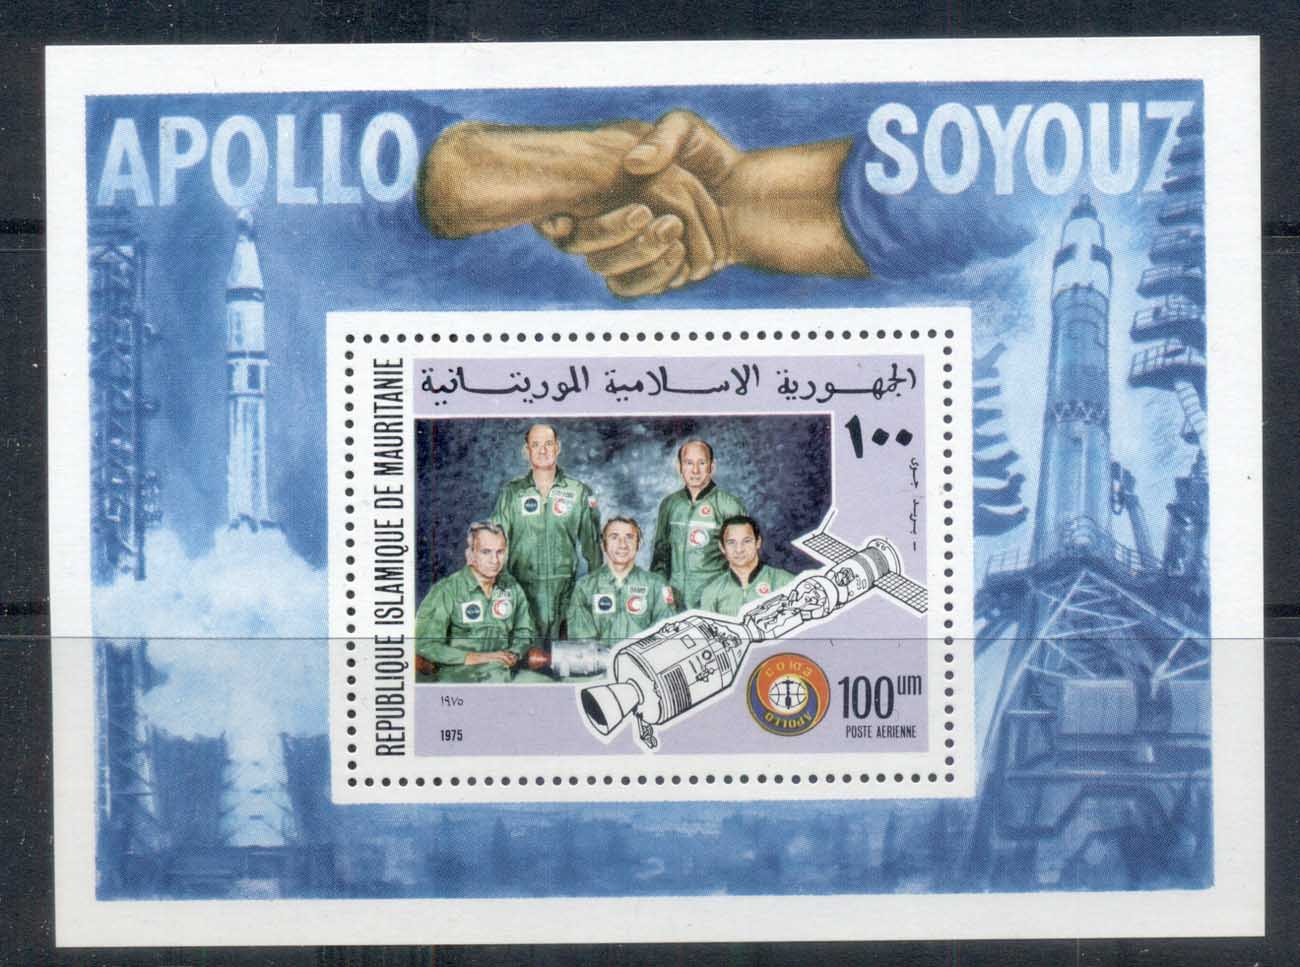 Mauritania 1975 Apollo-Soyuz Joint Russia/USA Space Project MS MUH